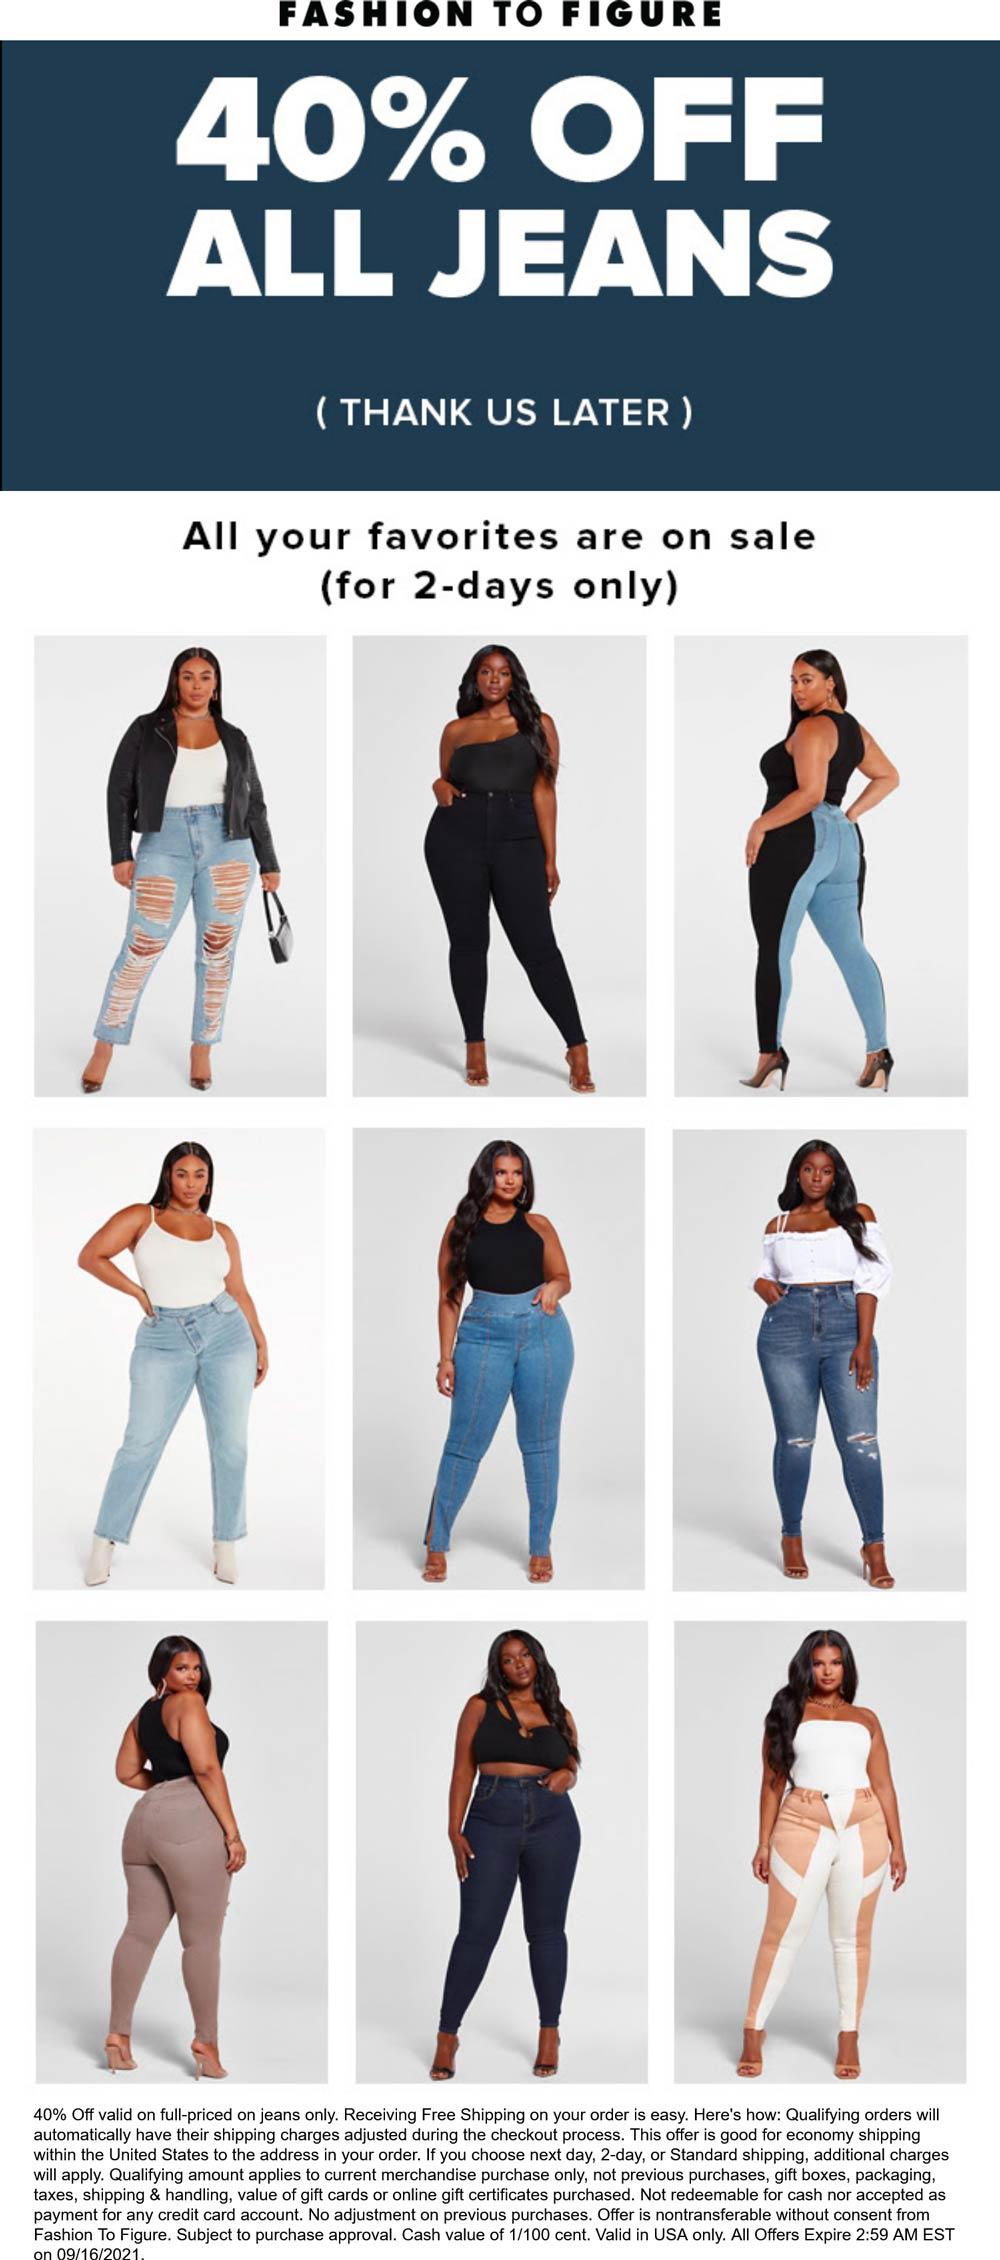 Fashion to Figure stores Coupon  40% off all jeans at Fashion to Figure #fashiontofigure